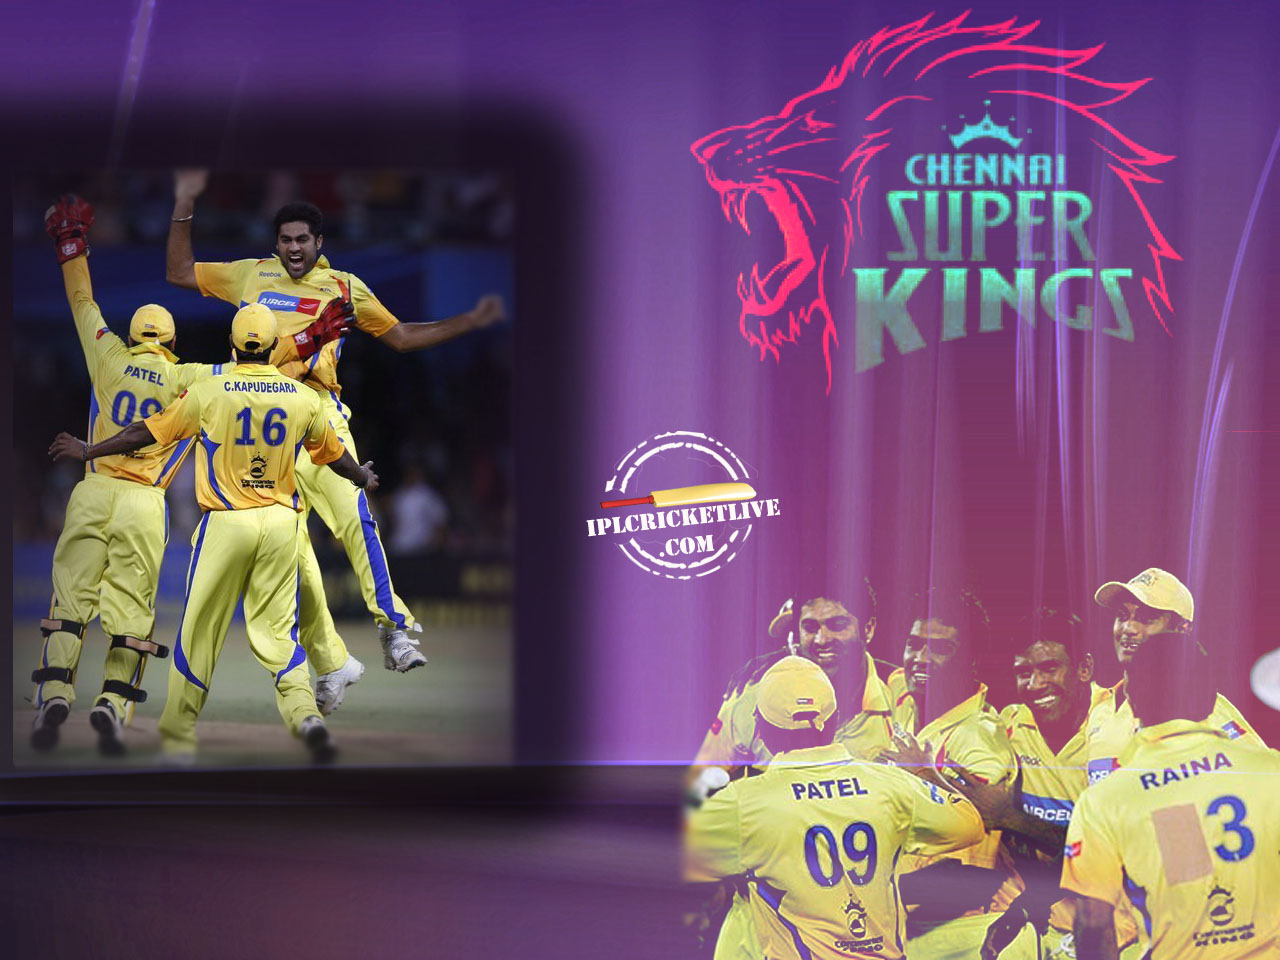 Super Kings Wallpaper